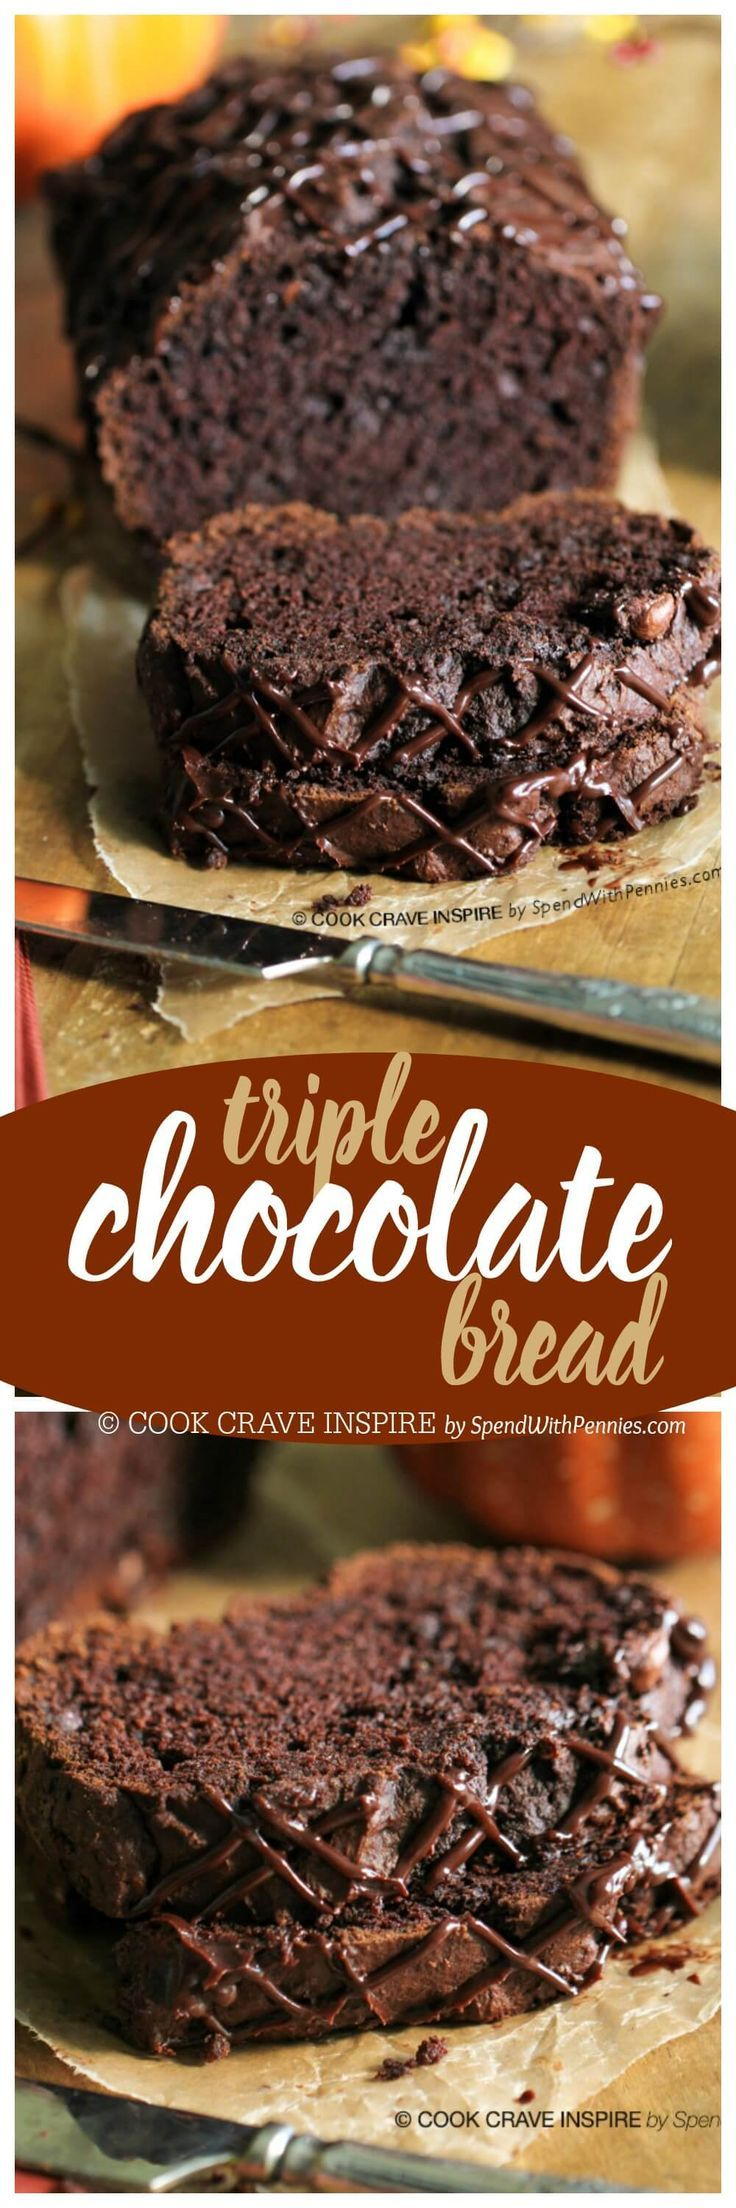 Triple Chocolate Bread! A rich chocolatey quick bread with a secret ingredient to keep it extra moist! This loaf contains dessert and breakfast all in one!